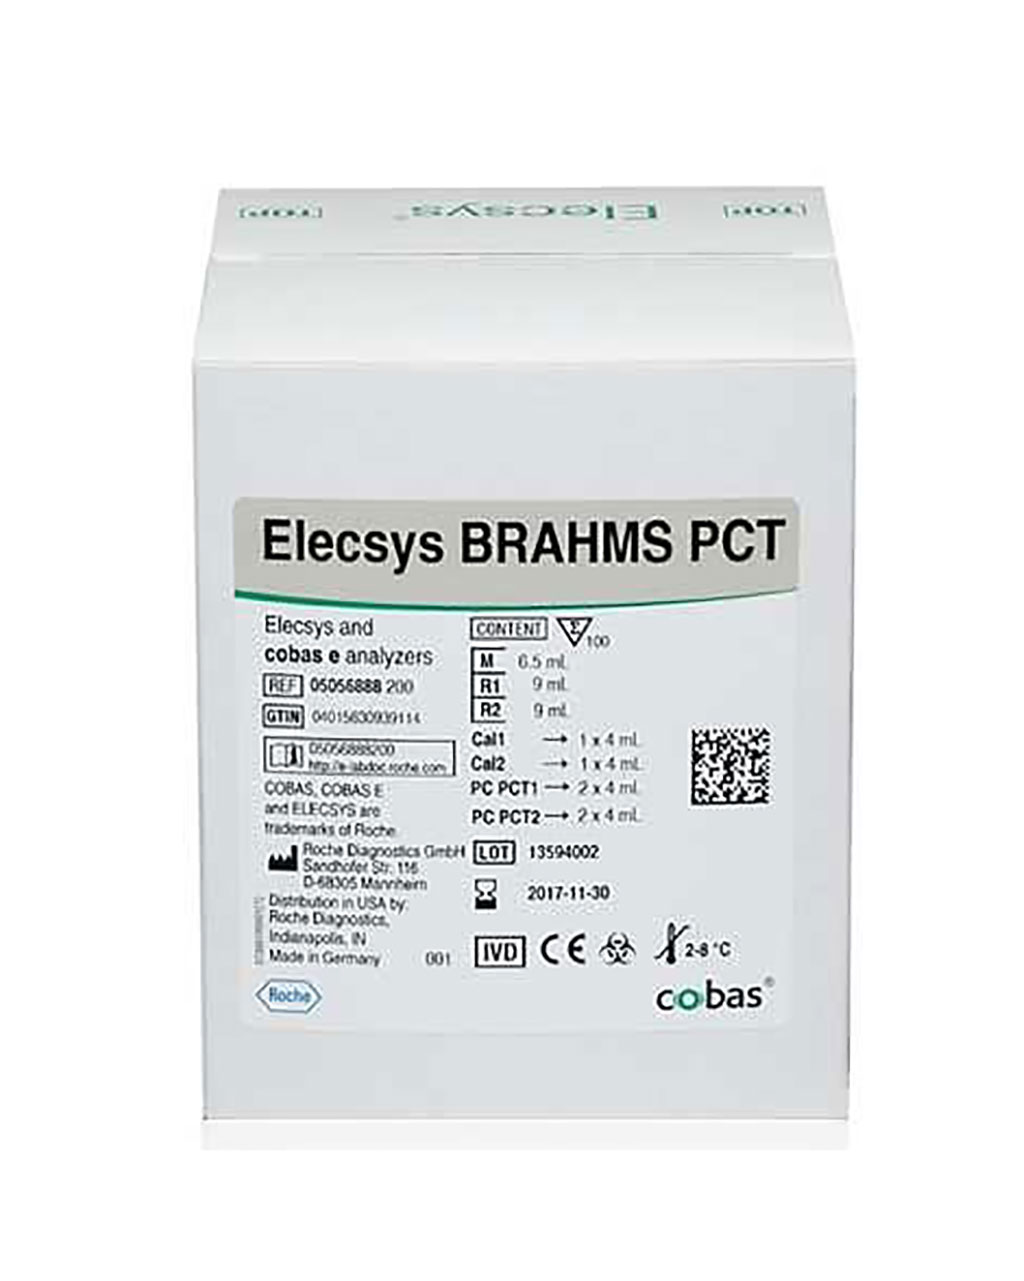 Image: Elecsys BRAHMS PCT Assay measures procalcitonin in human serum (Photo courtesy of Roche Diagnostics).